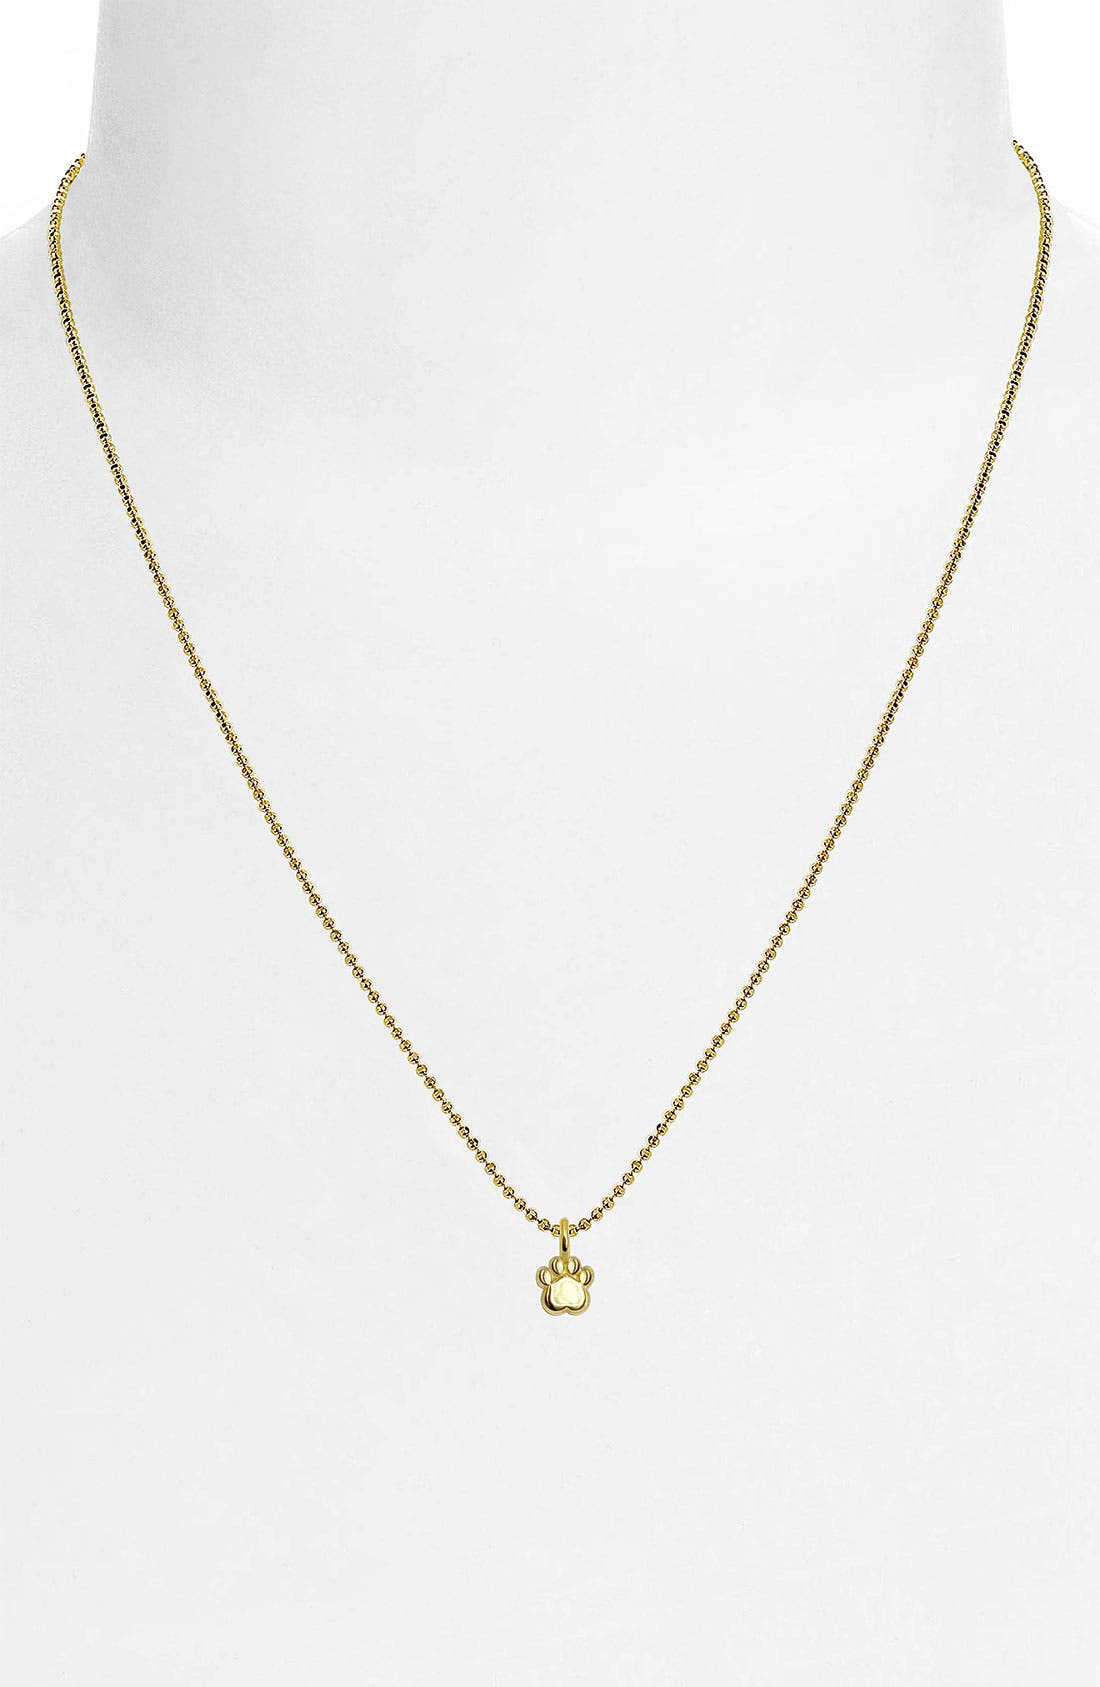 Alternate Image 2  - Alex Woo 'Mini Paw' 14k Gold Pendant Necklace